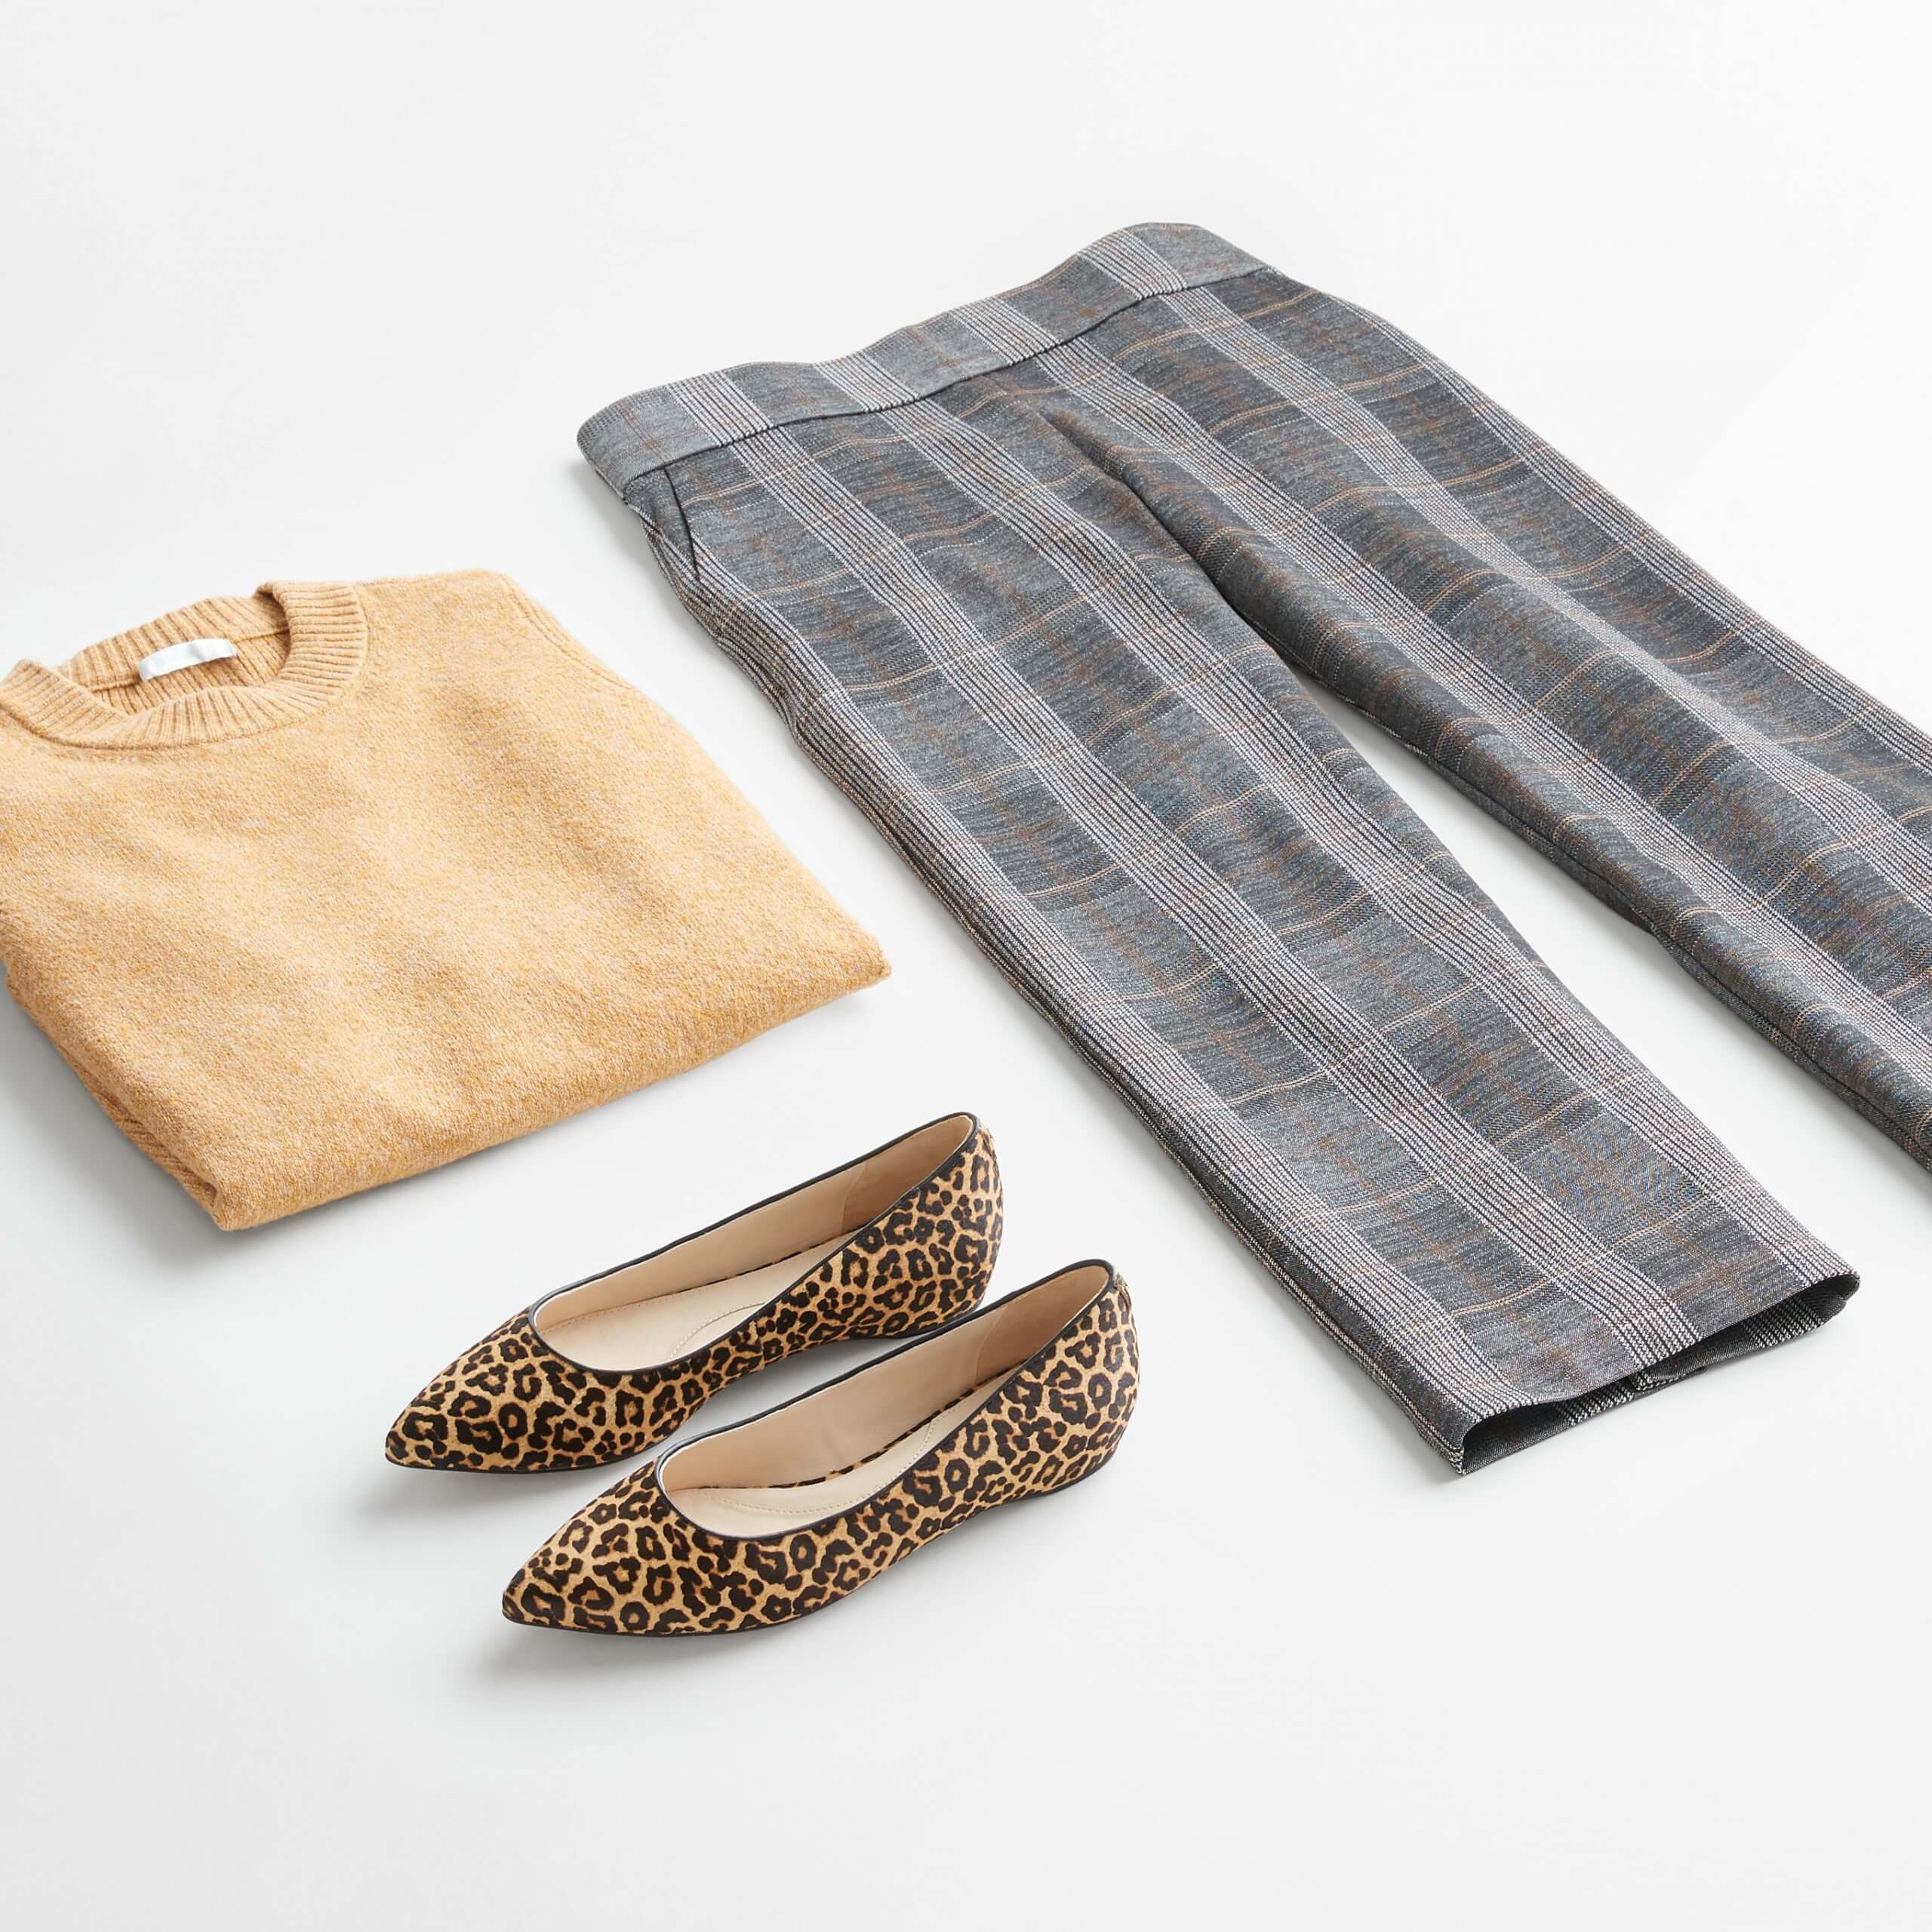 Stitch Fix Women's outfit laydown featuring grey wide-leg pants, camel crew neck pullover and brown animal-print flats.